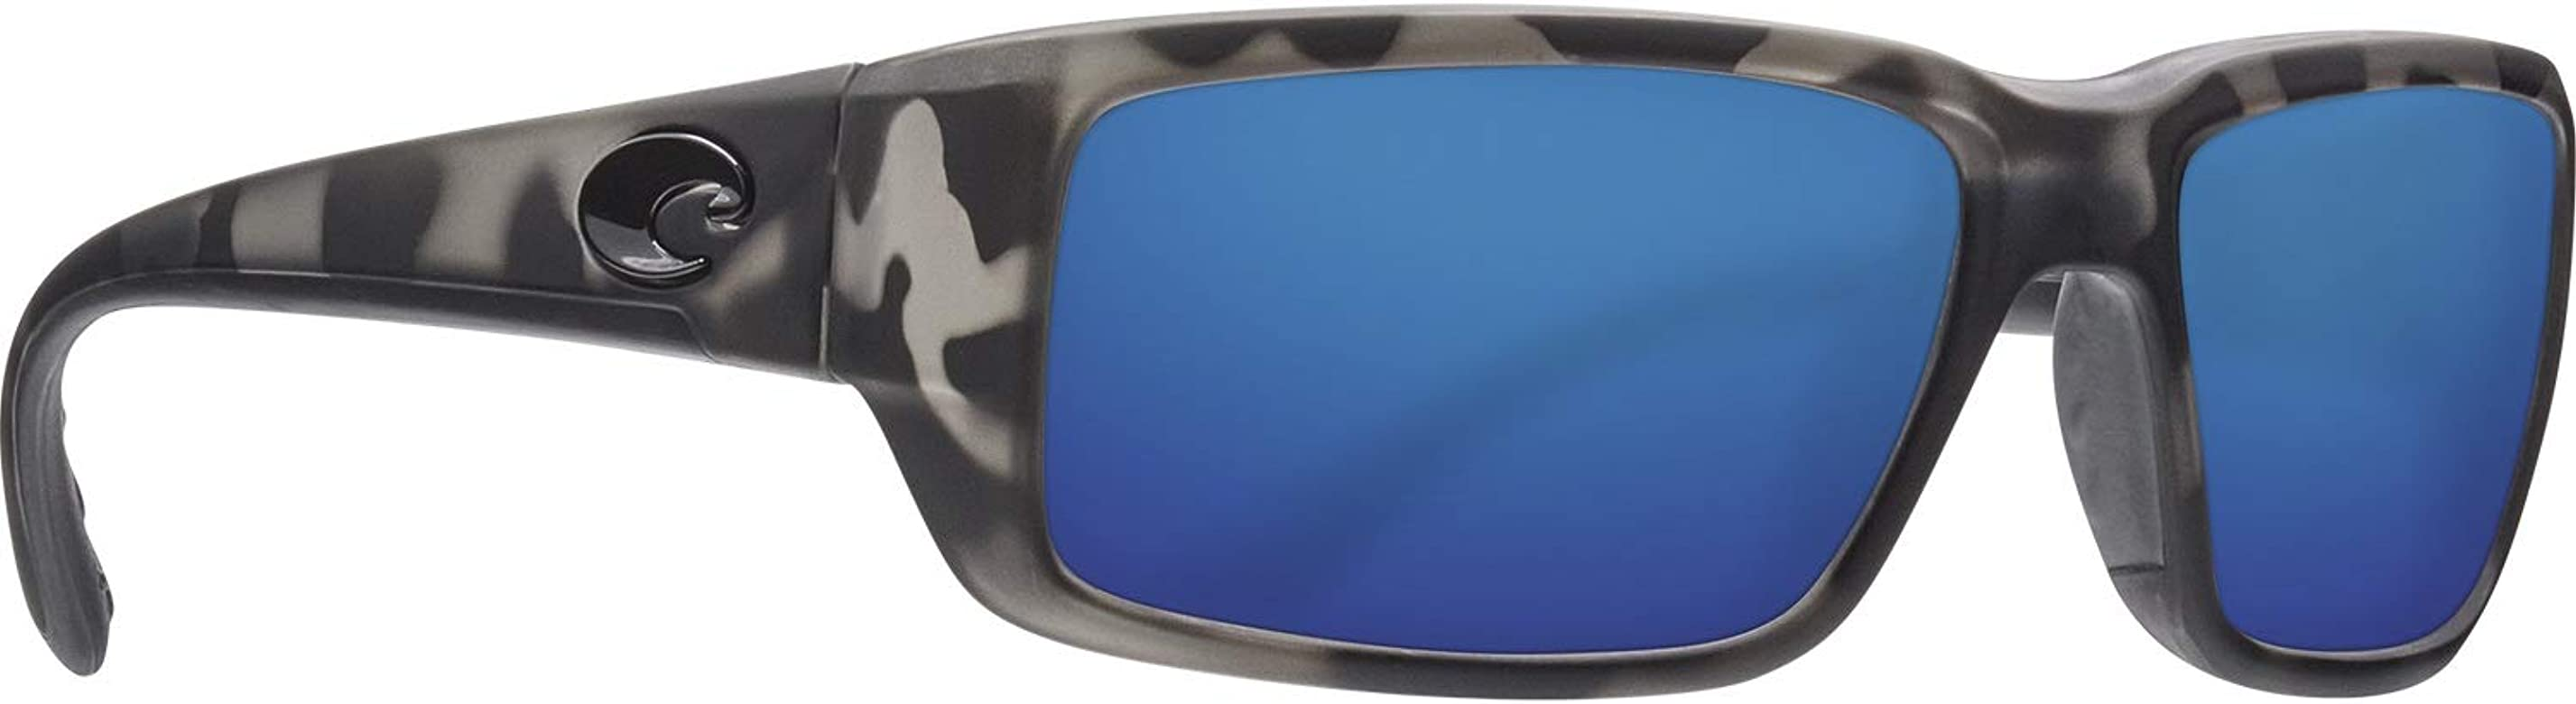 Costa Del Mar Fantail Blackout Frame Blue Mirror 580G Glass Polarized Lens